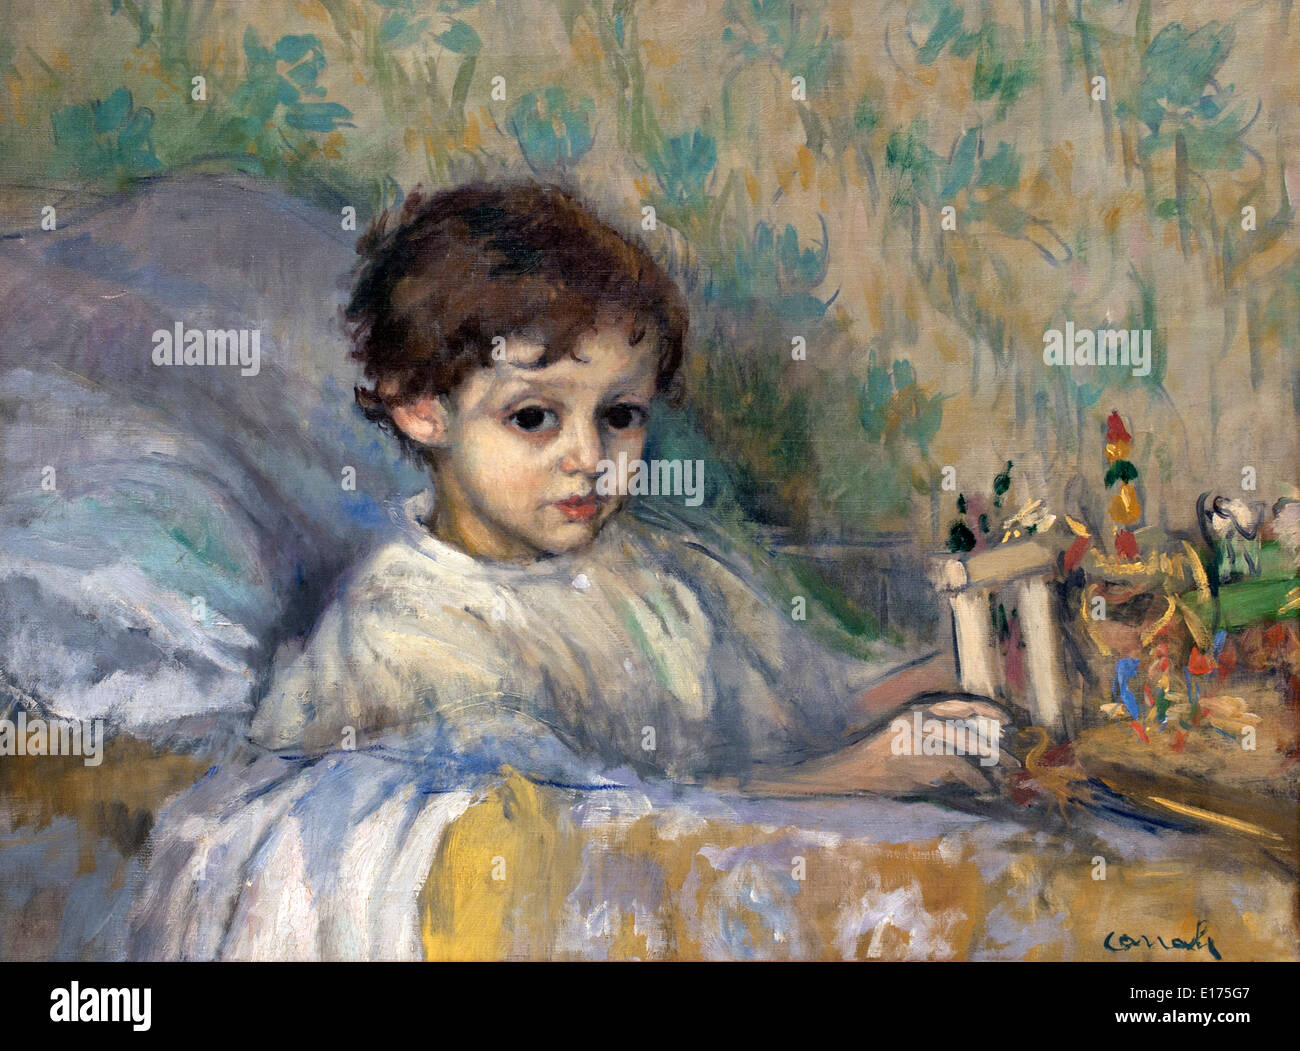 Study (Sick Child) 1903  Ricard Canals 1876-1931  Spain Spanish - Stock Image